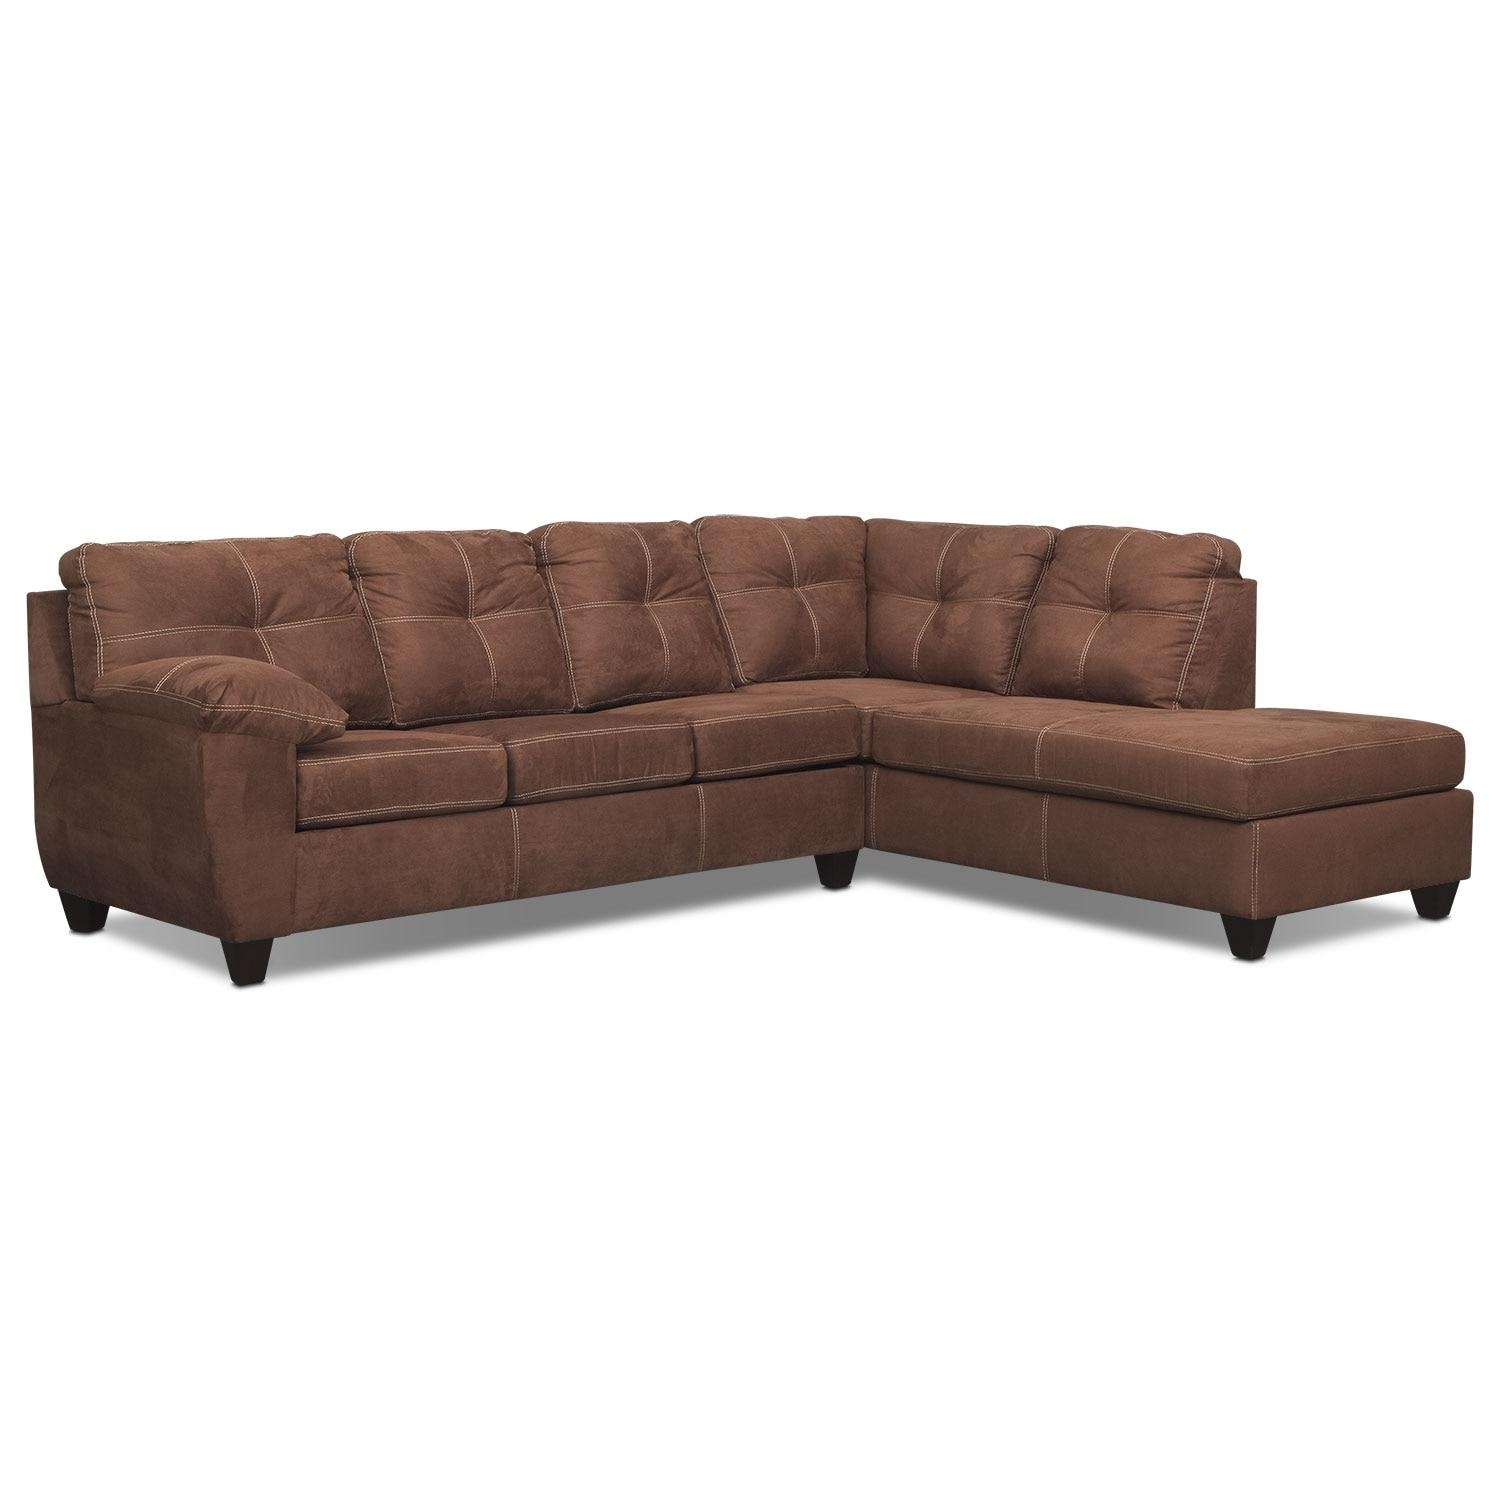 best queen sleeper sofa 2017 brown leather living room design 20 collection of simmons sofas ideas